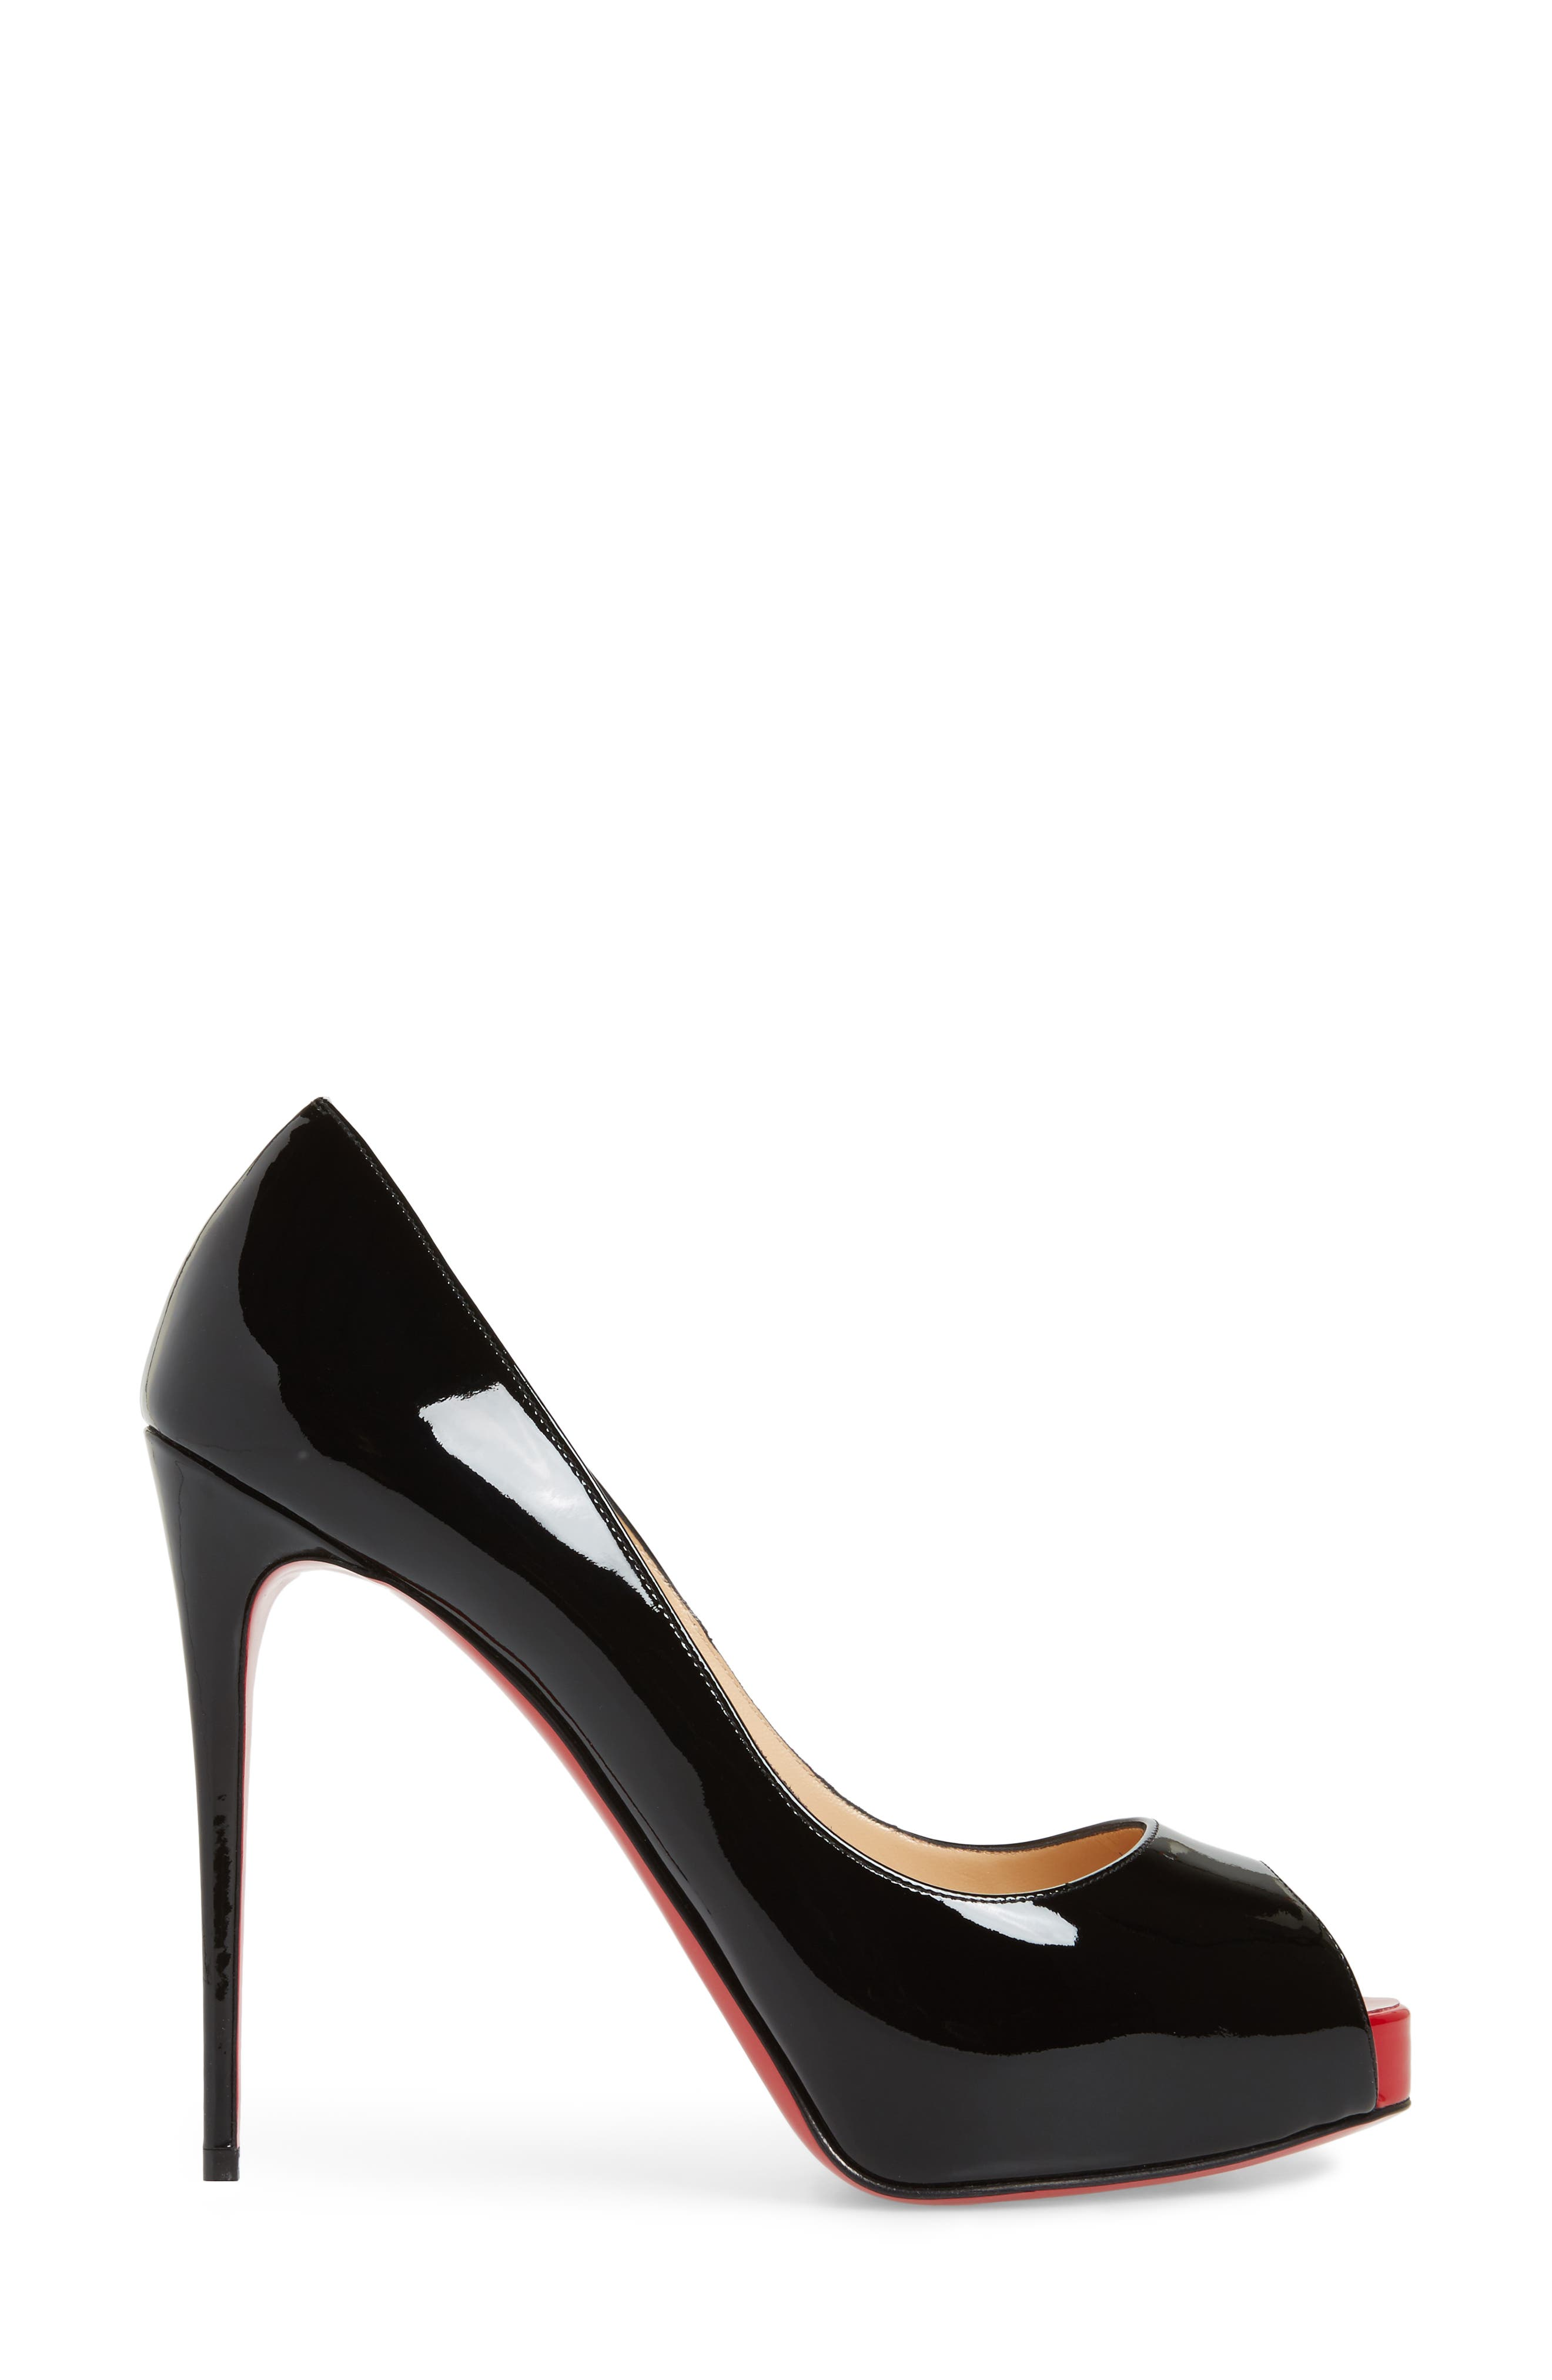 'Prive' Open Toe Pump,                             Alternate thumbnail 3, color,                             BLACK/ RED